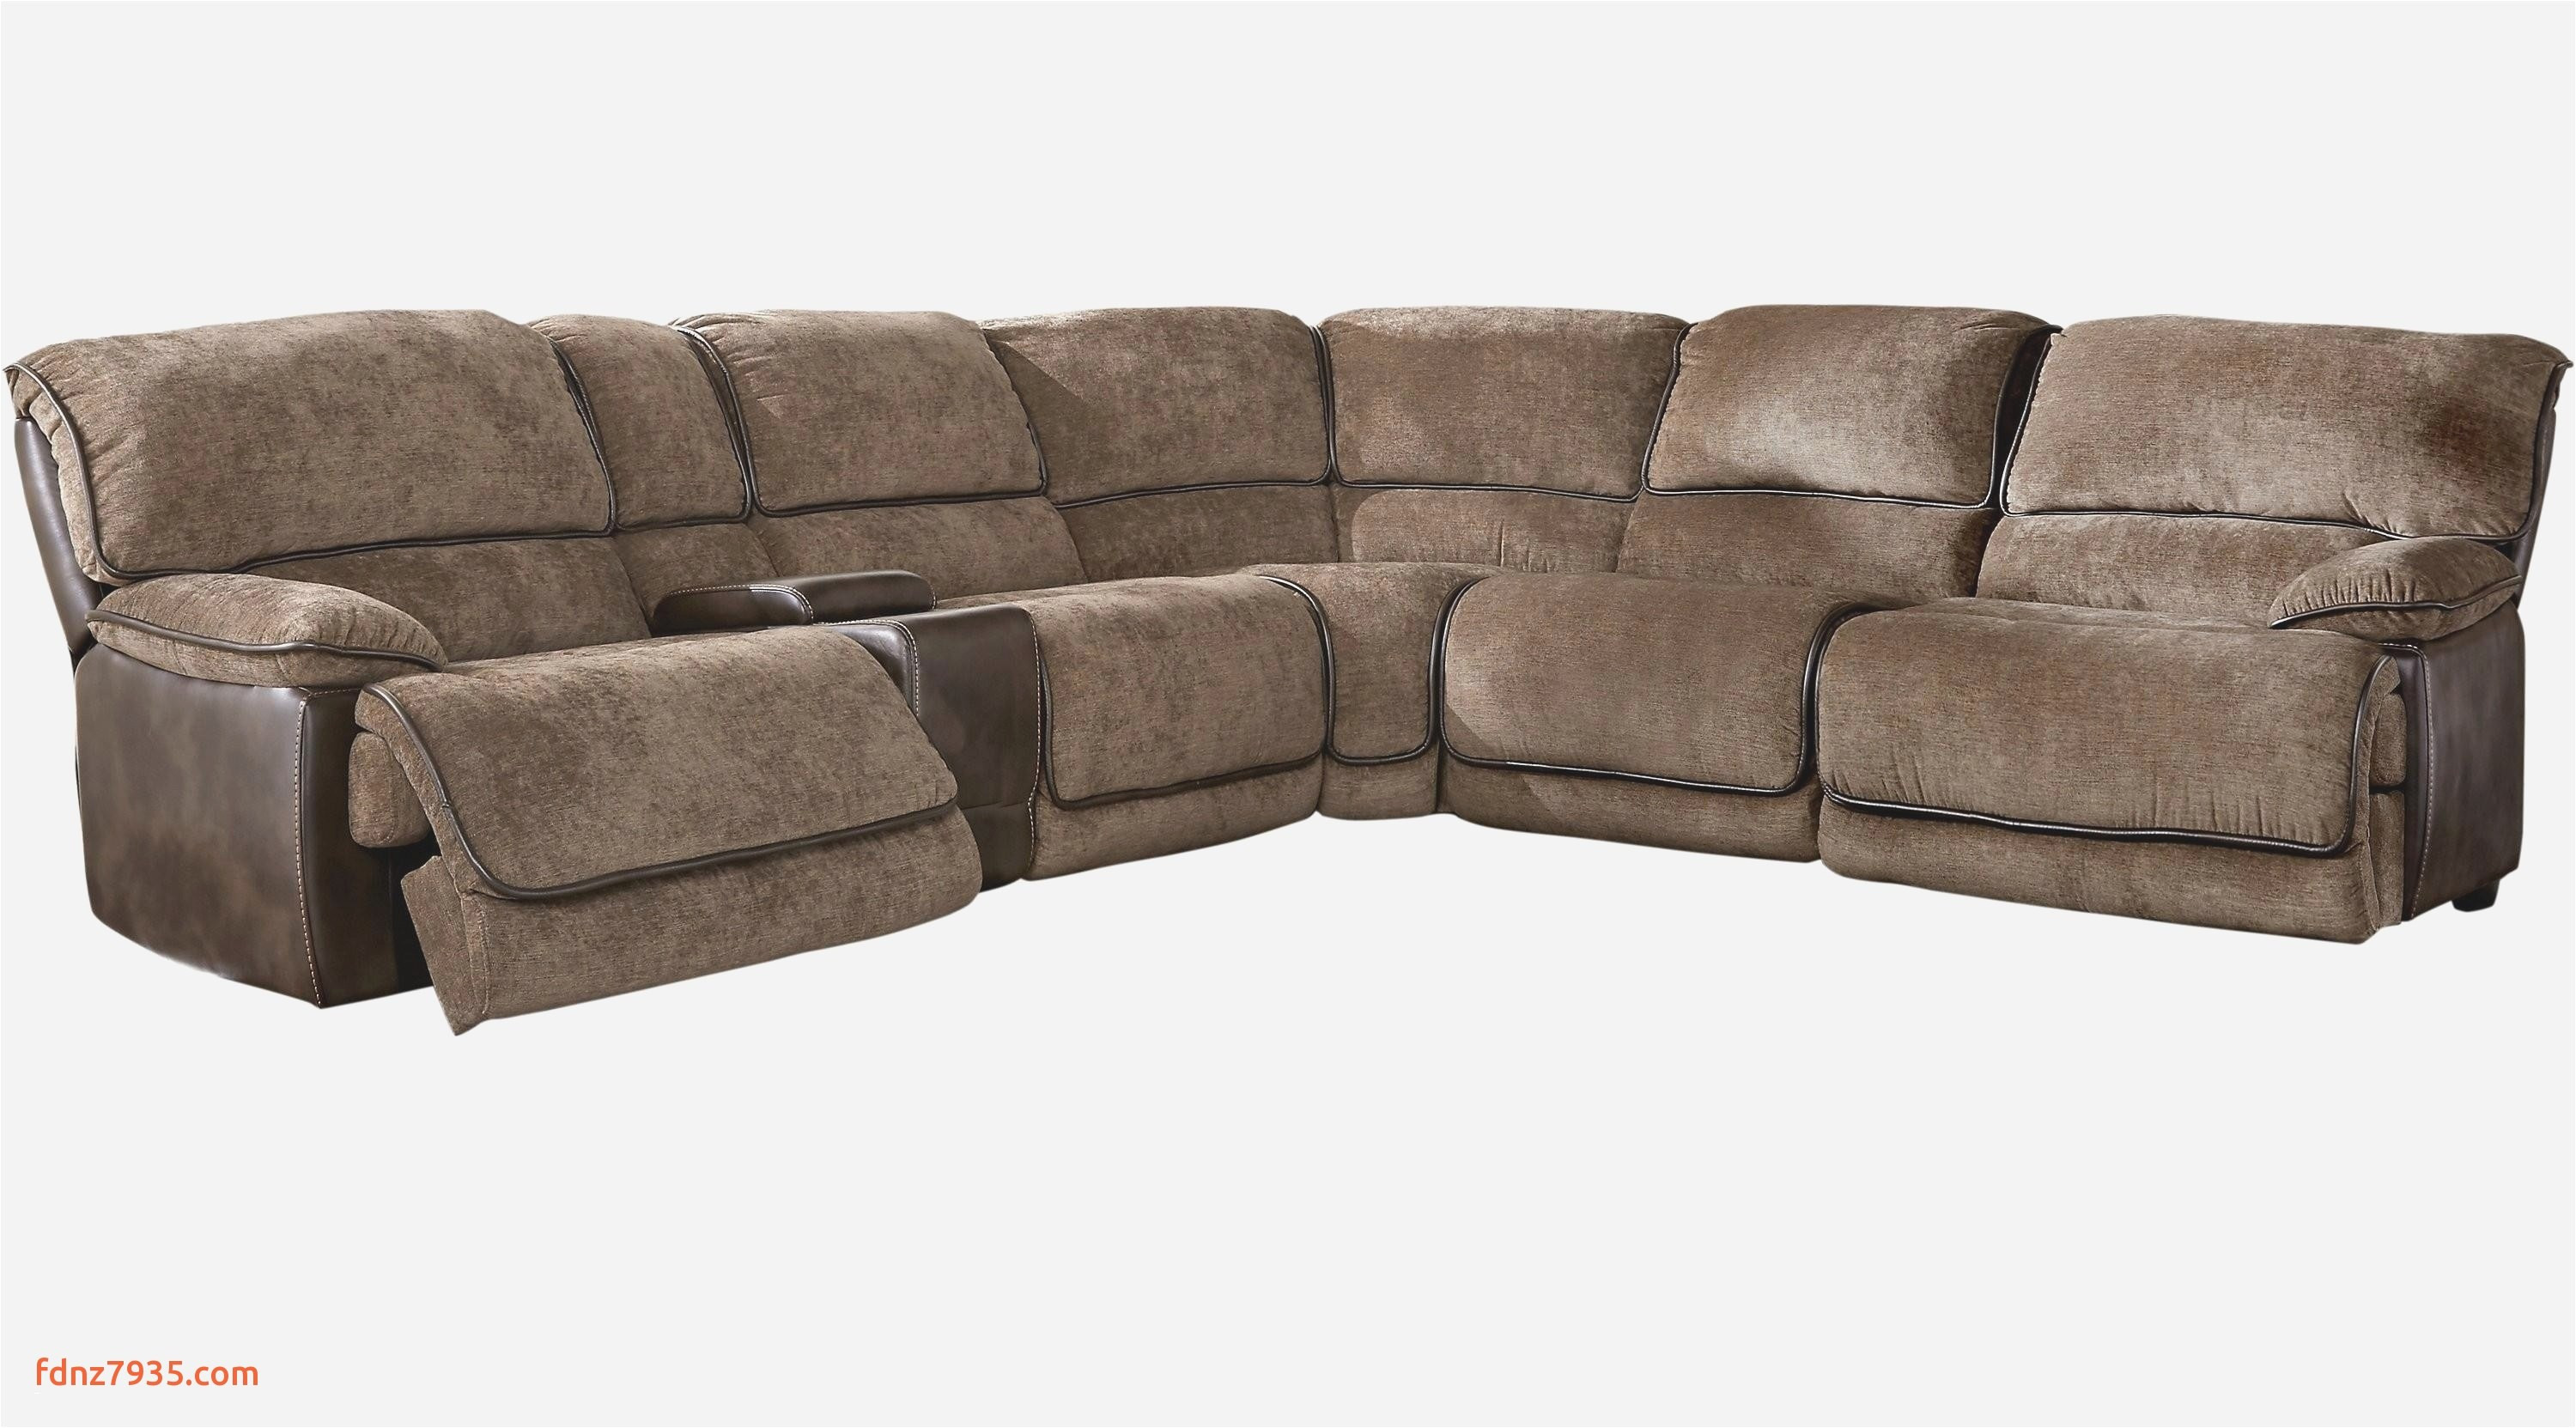 modern slipcovered sofa beautiful slipcover sectional sofa luxury couch cover new sectional couch 0d